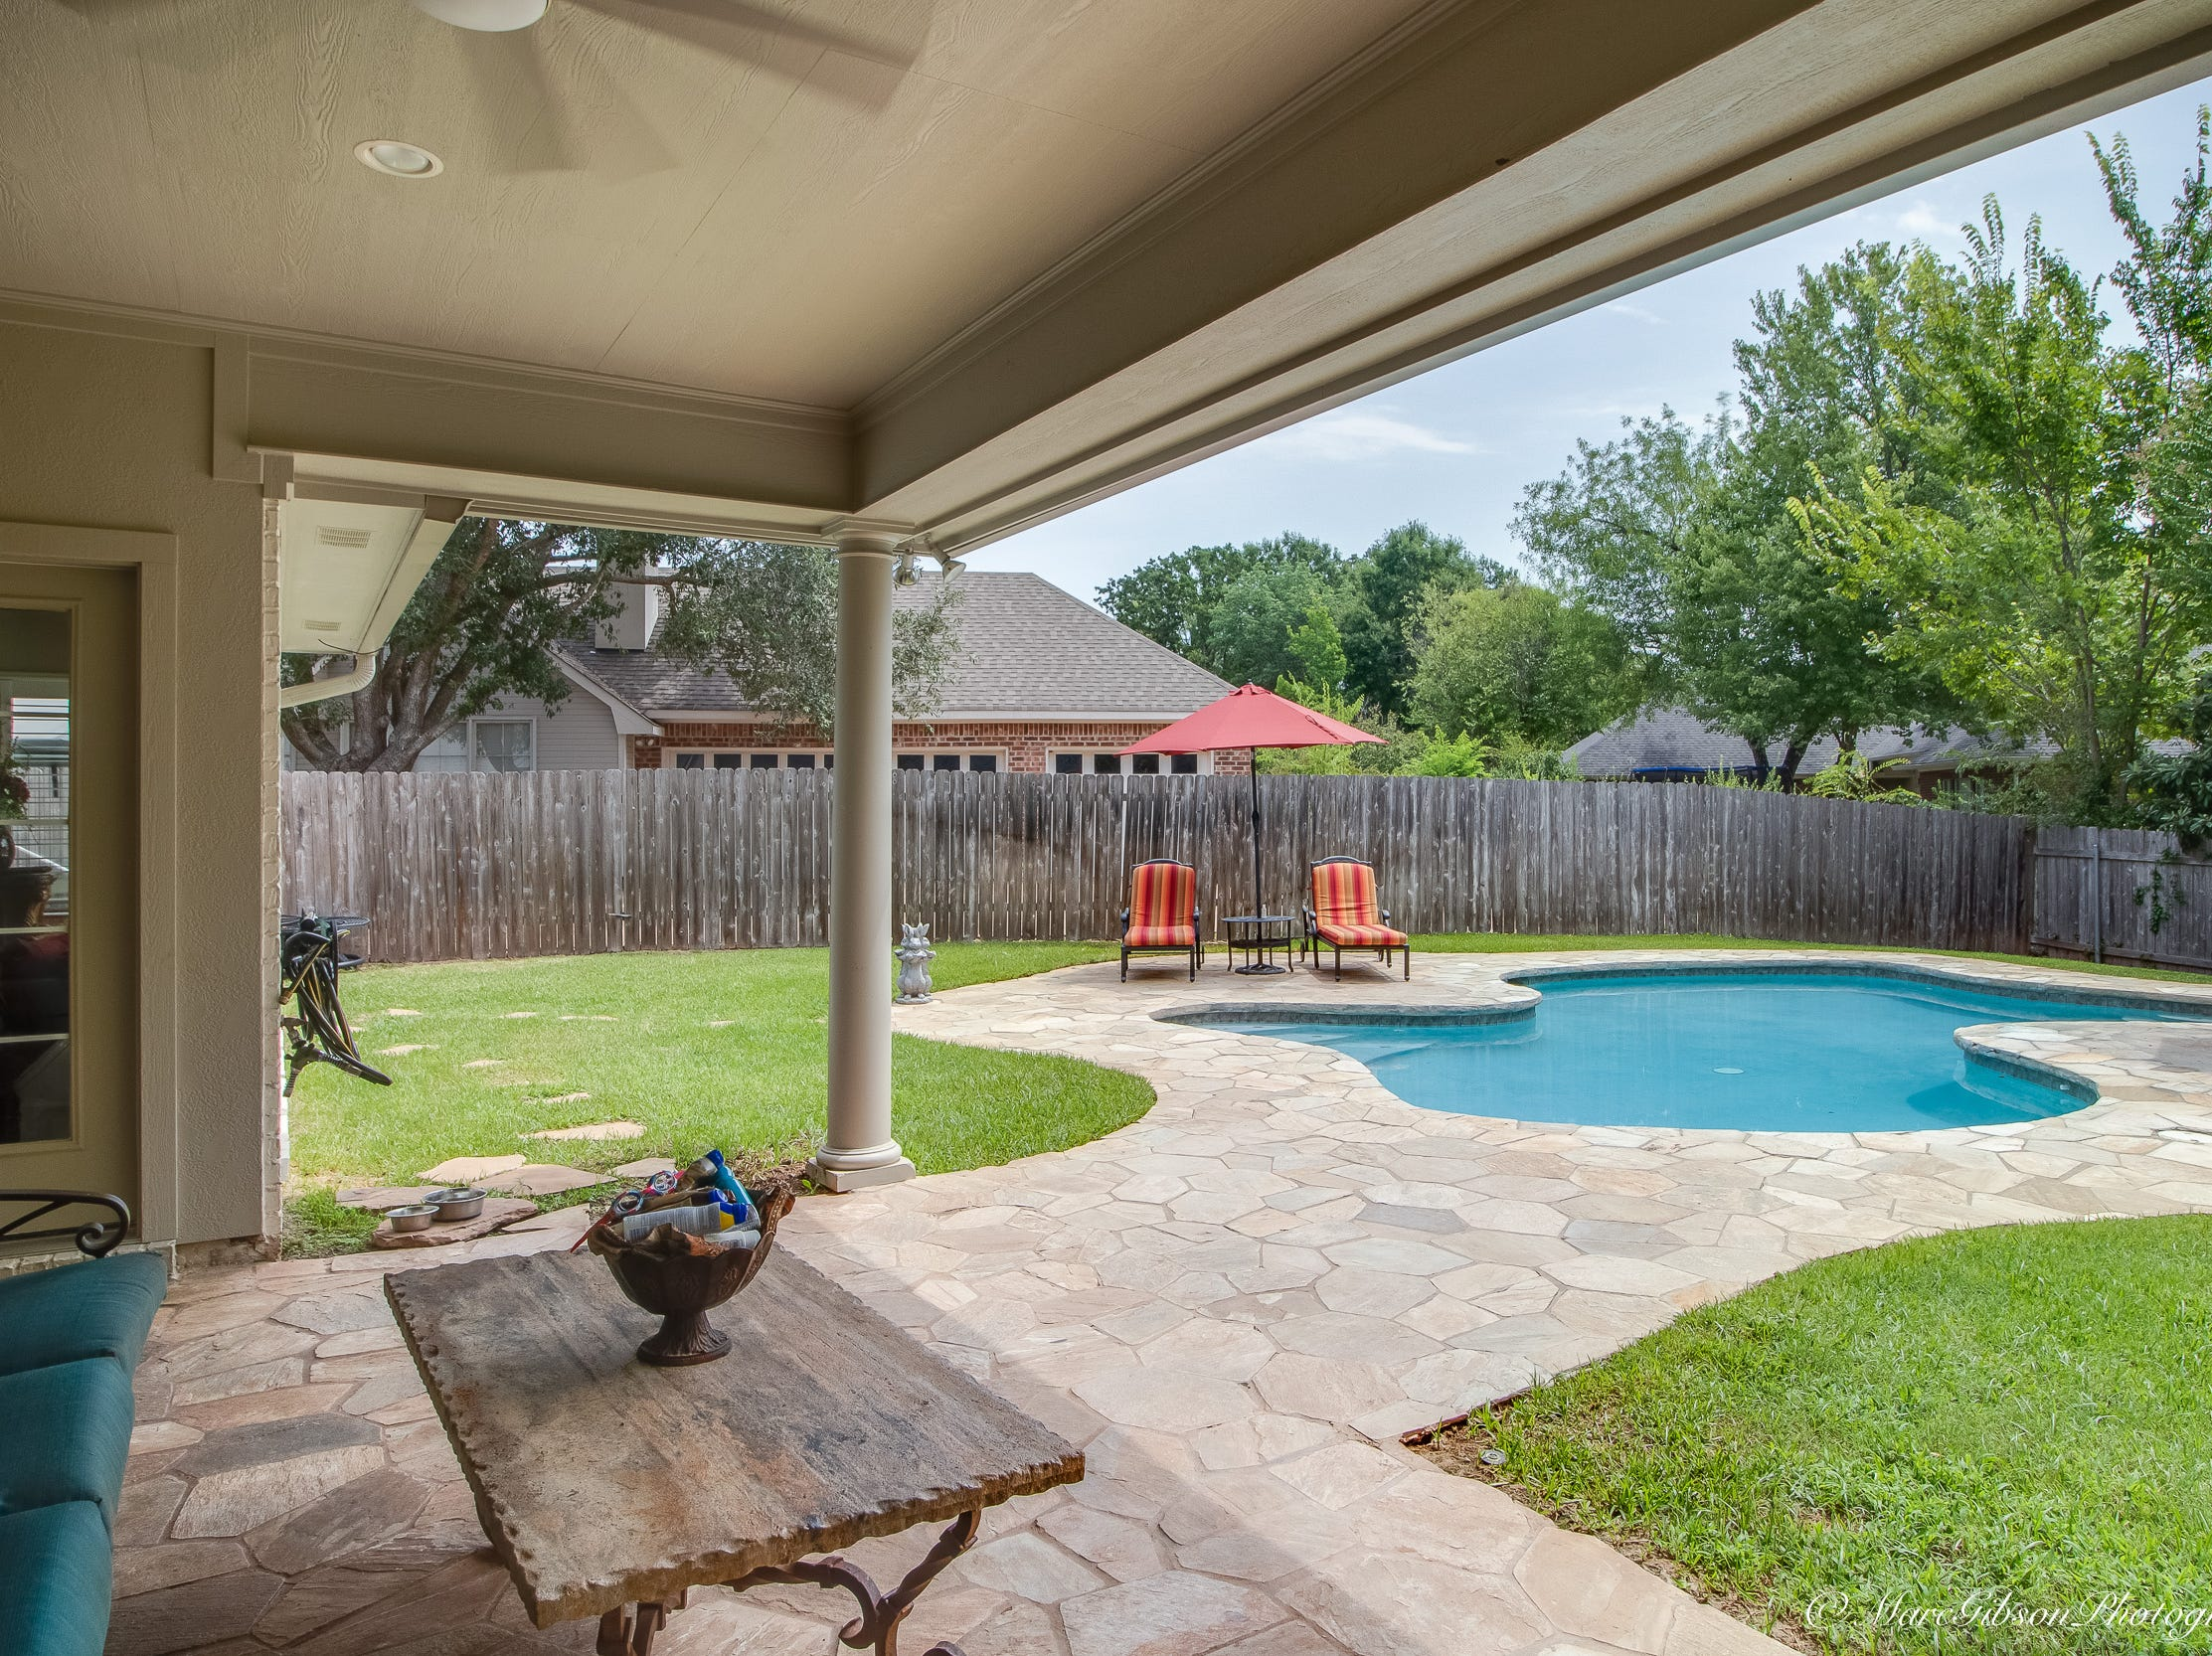 11055 Ashland Way,   Shreveport  Price: $375,000  Details: 4 bedrooms, 3 bathrooms, 2,860 square feet  Special features: Southern Trace beauty with vaulted ceiling,  chef's kitchen and backyard oasis.  Contact: Andy Osborn, 546-3701